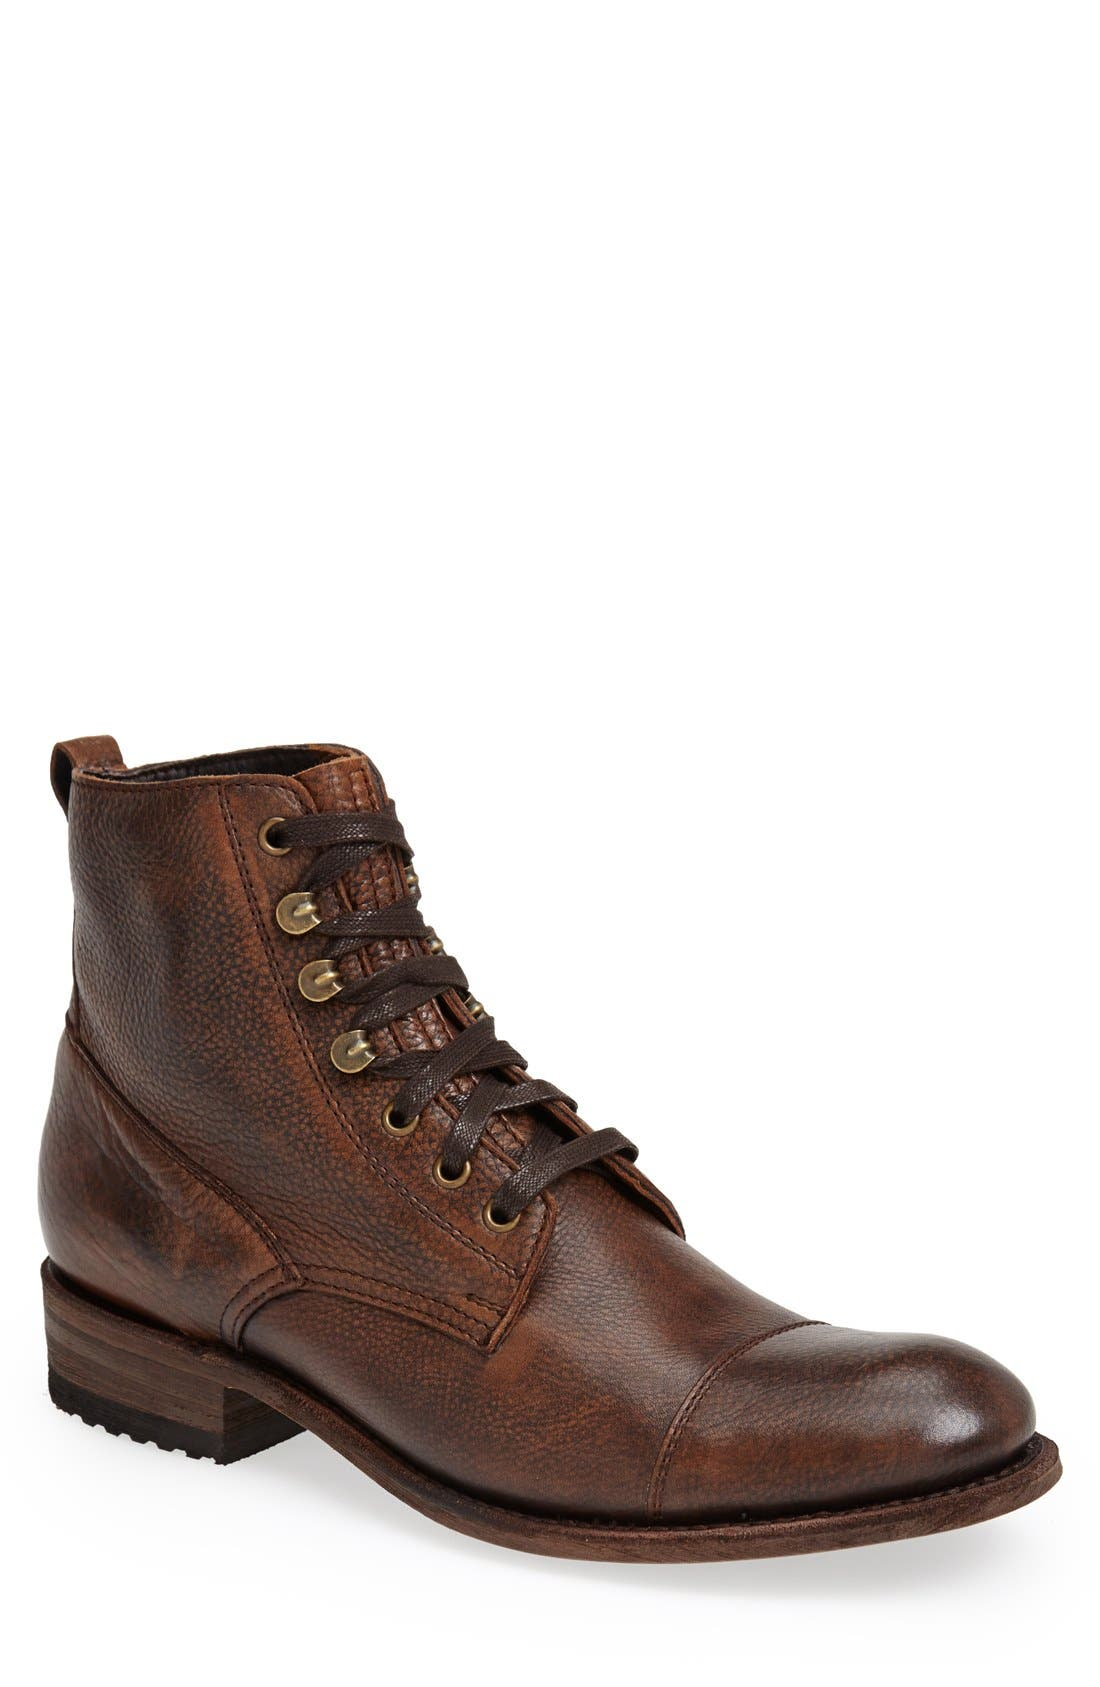 'Station' Cap Toe Boot,                         Main,                         color, 200